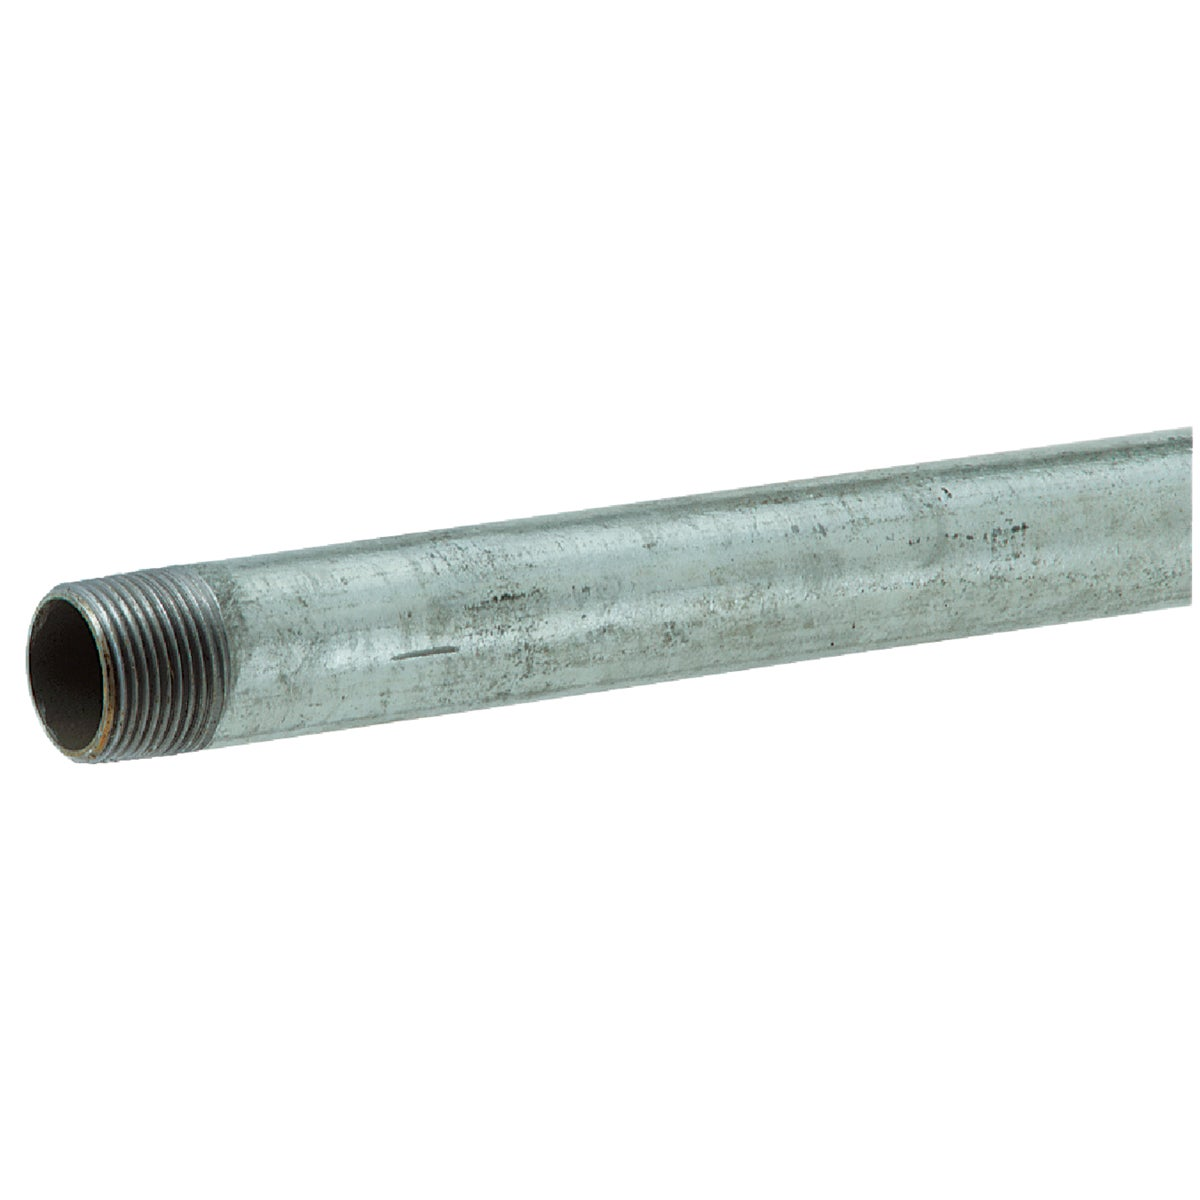 1-1/2X24 GLV RDI-CT PIPE